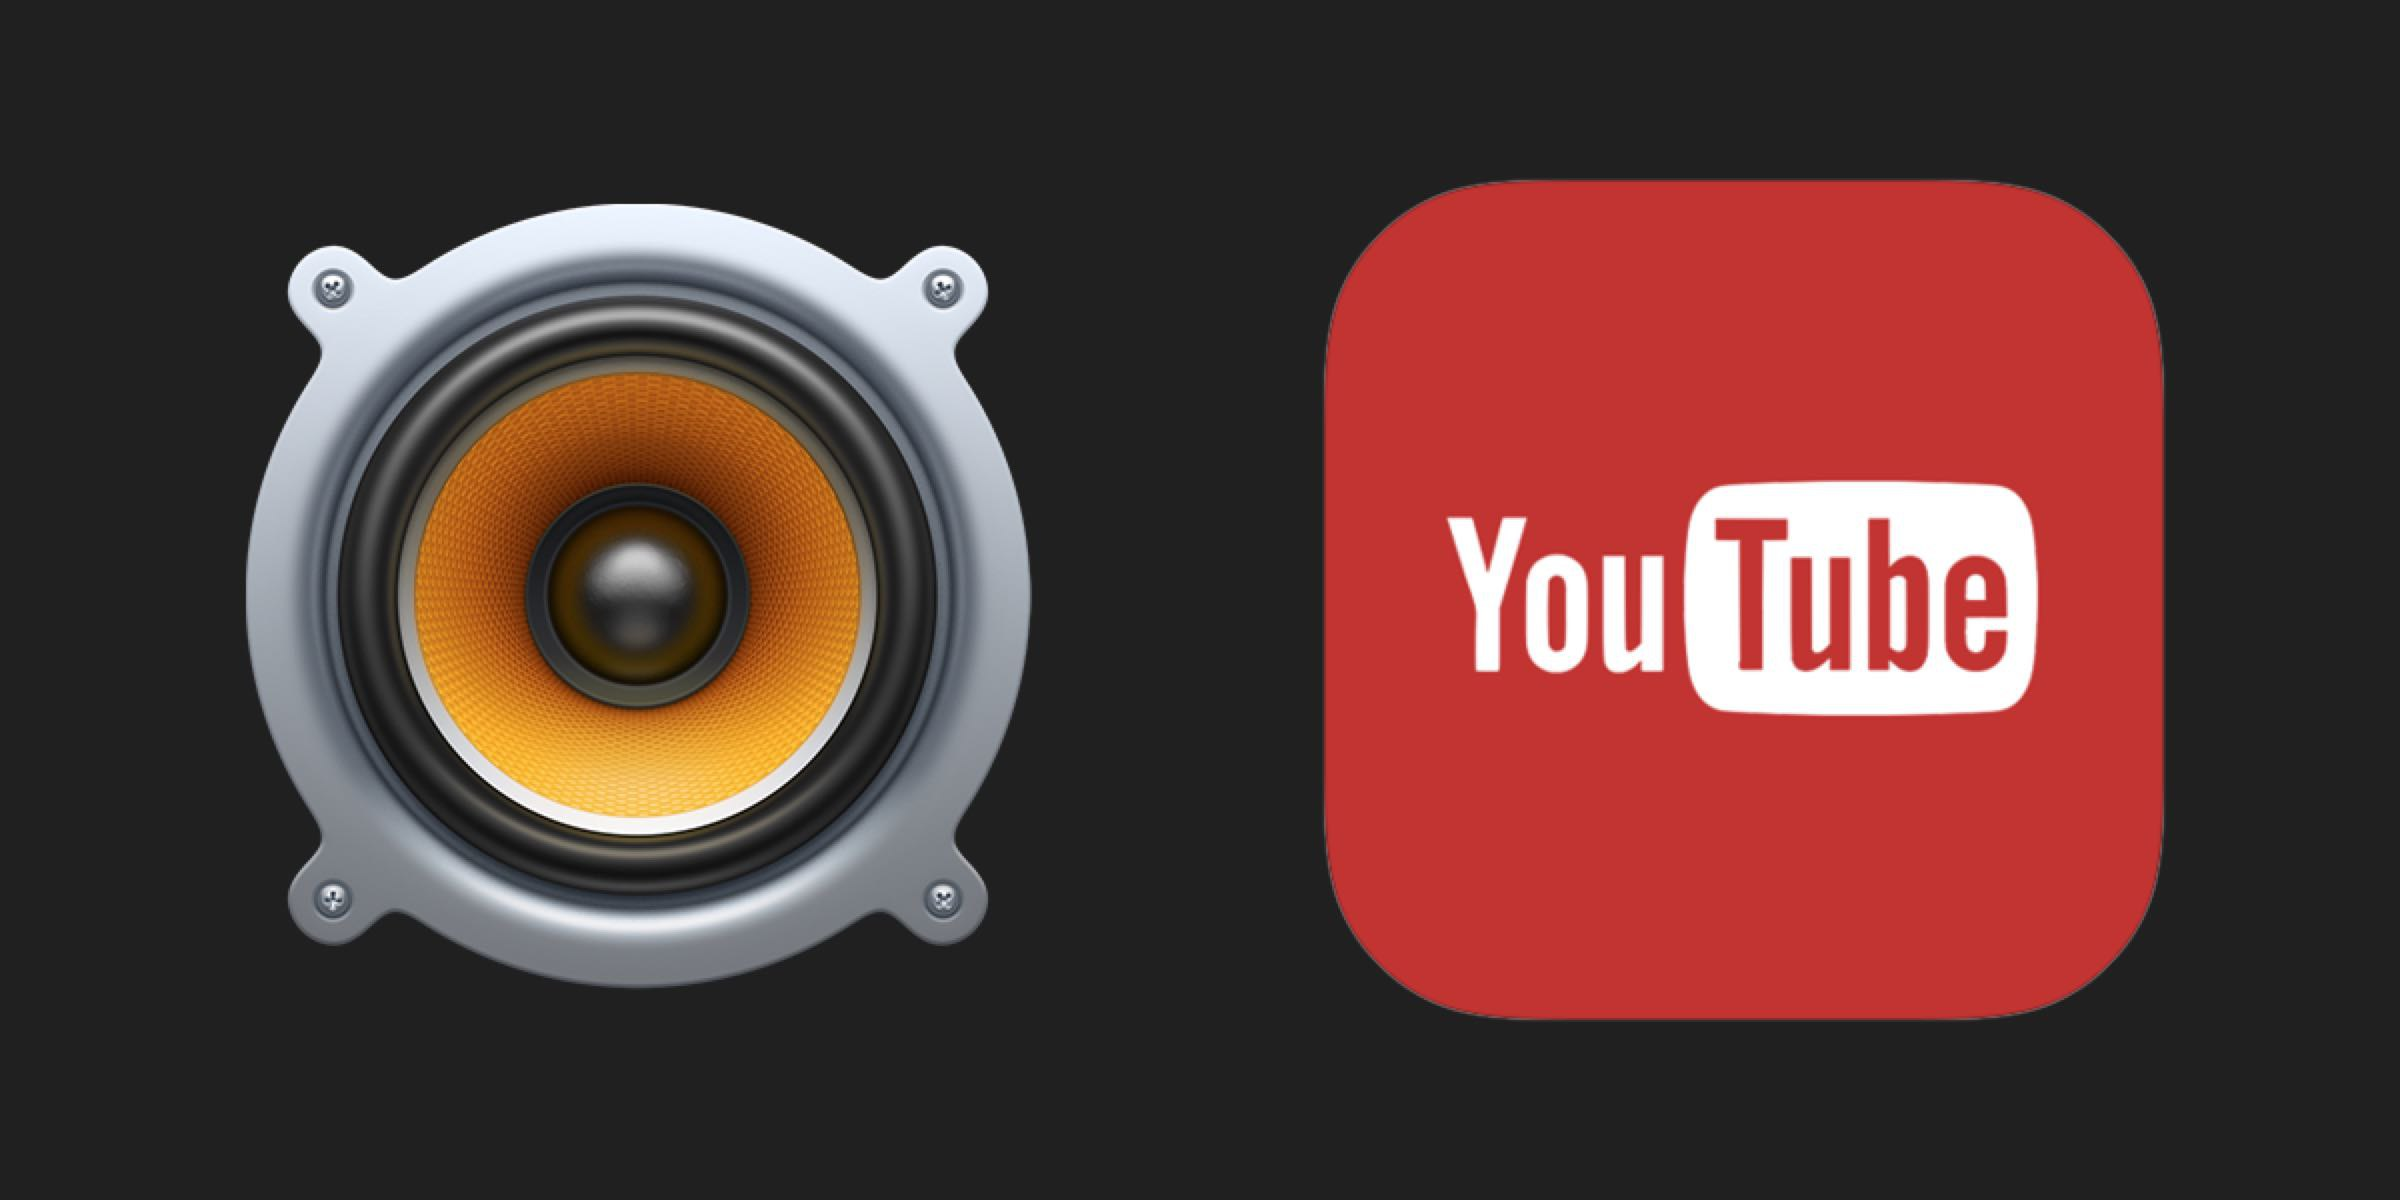 Youtube and VOX Music Player logos. VOX helps you turn Youtube video into MP3